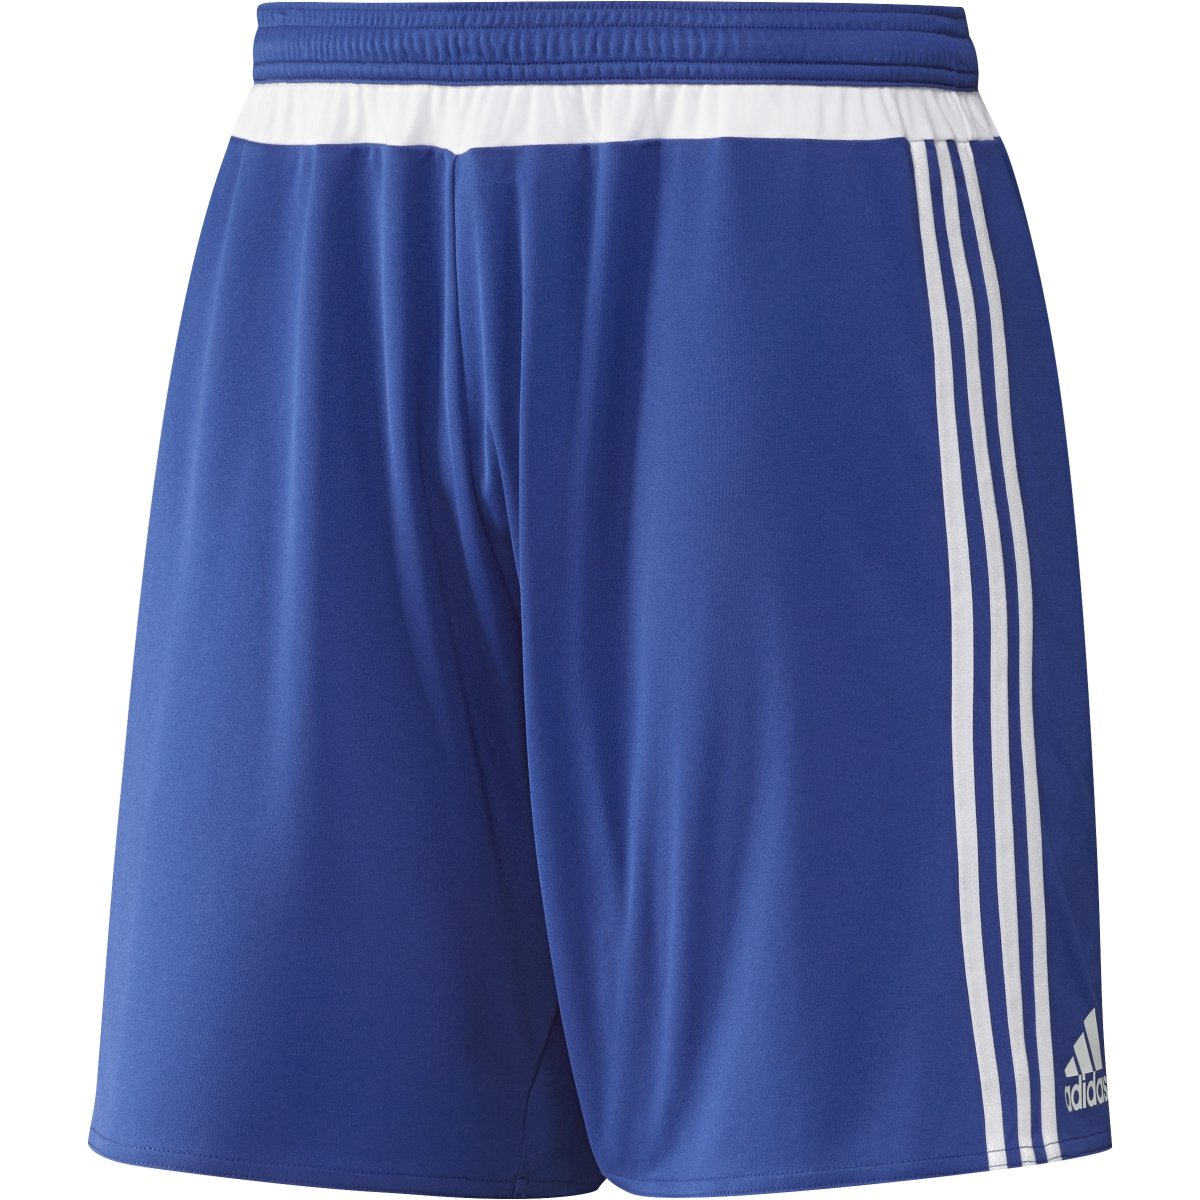 Adidas MLS 15 Match Mens Soccer Short